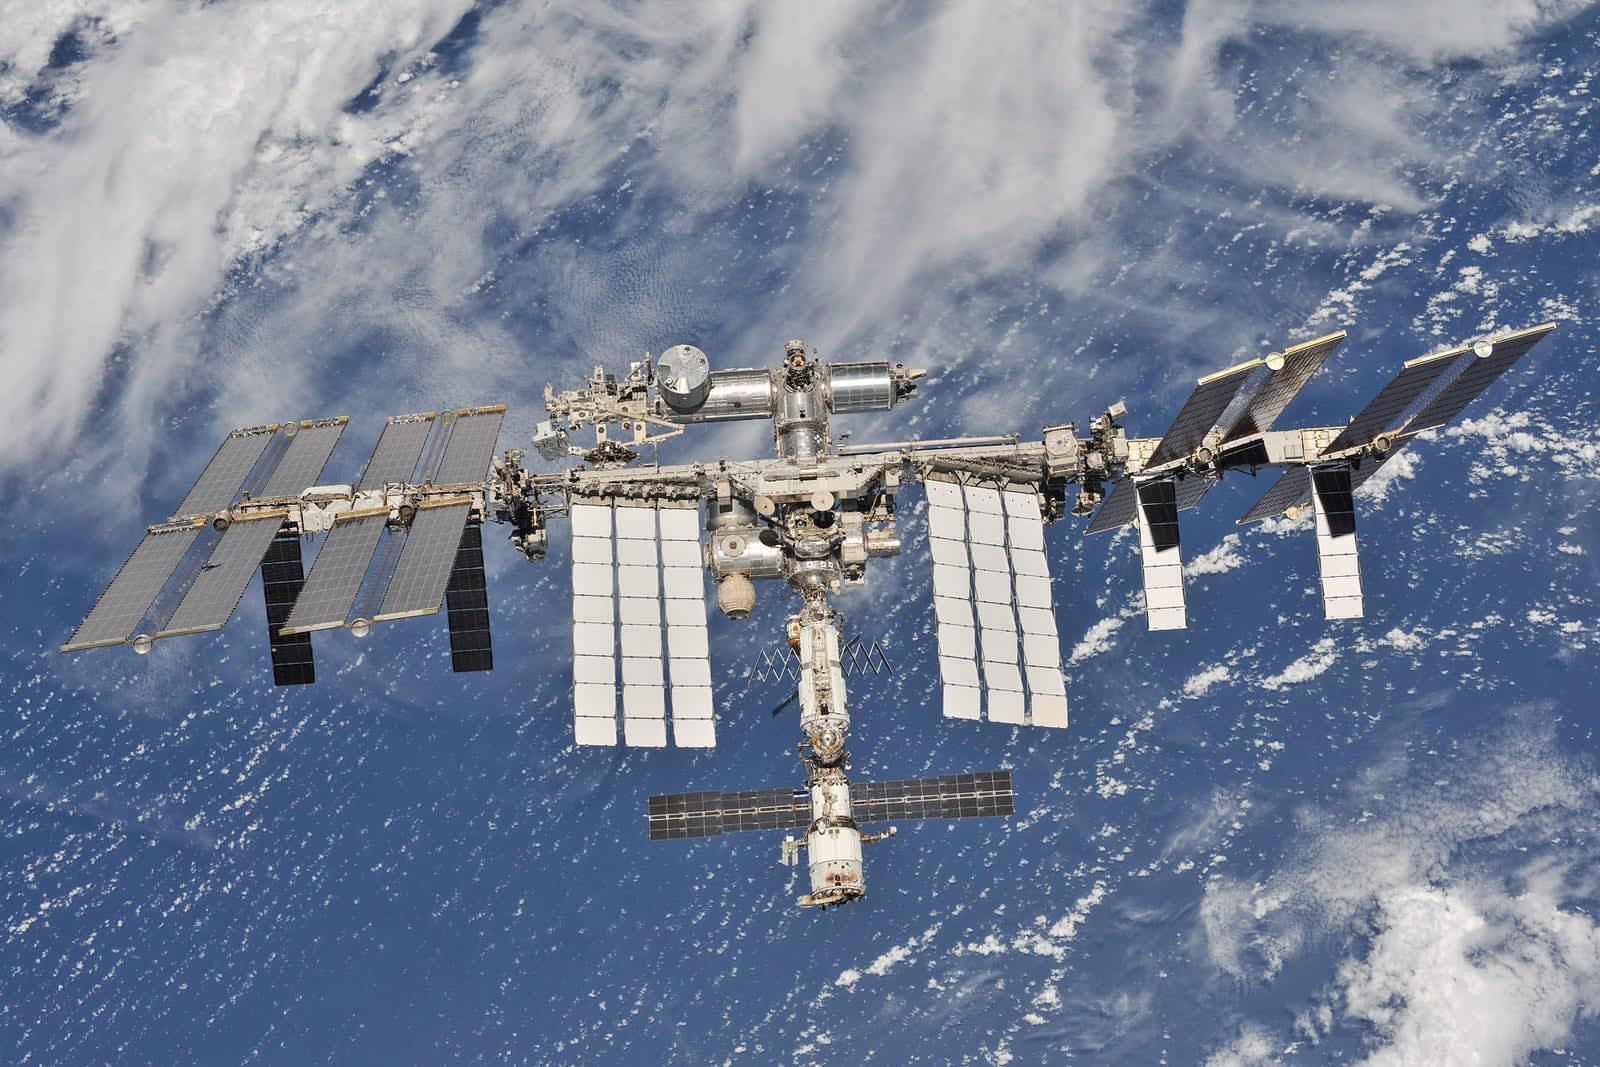 NASA picks space tourism outfit for its first commercial ISS module